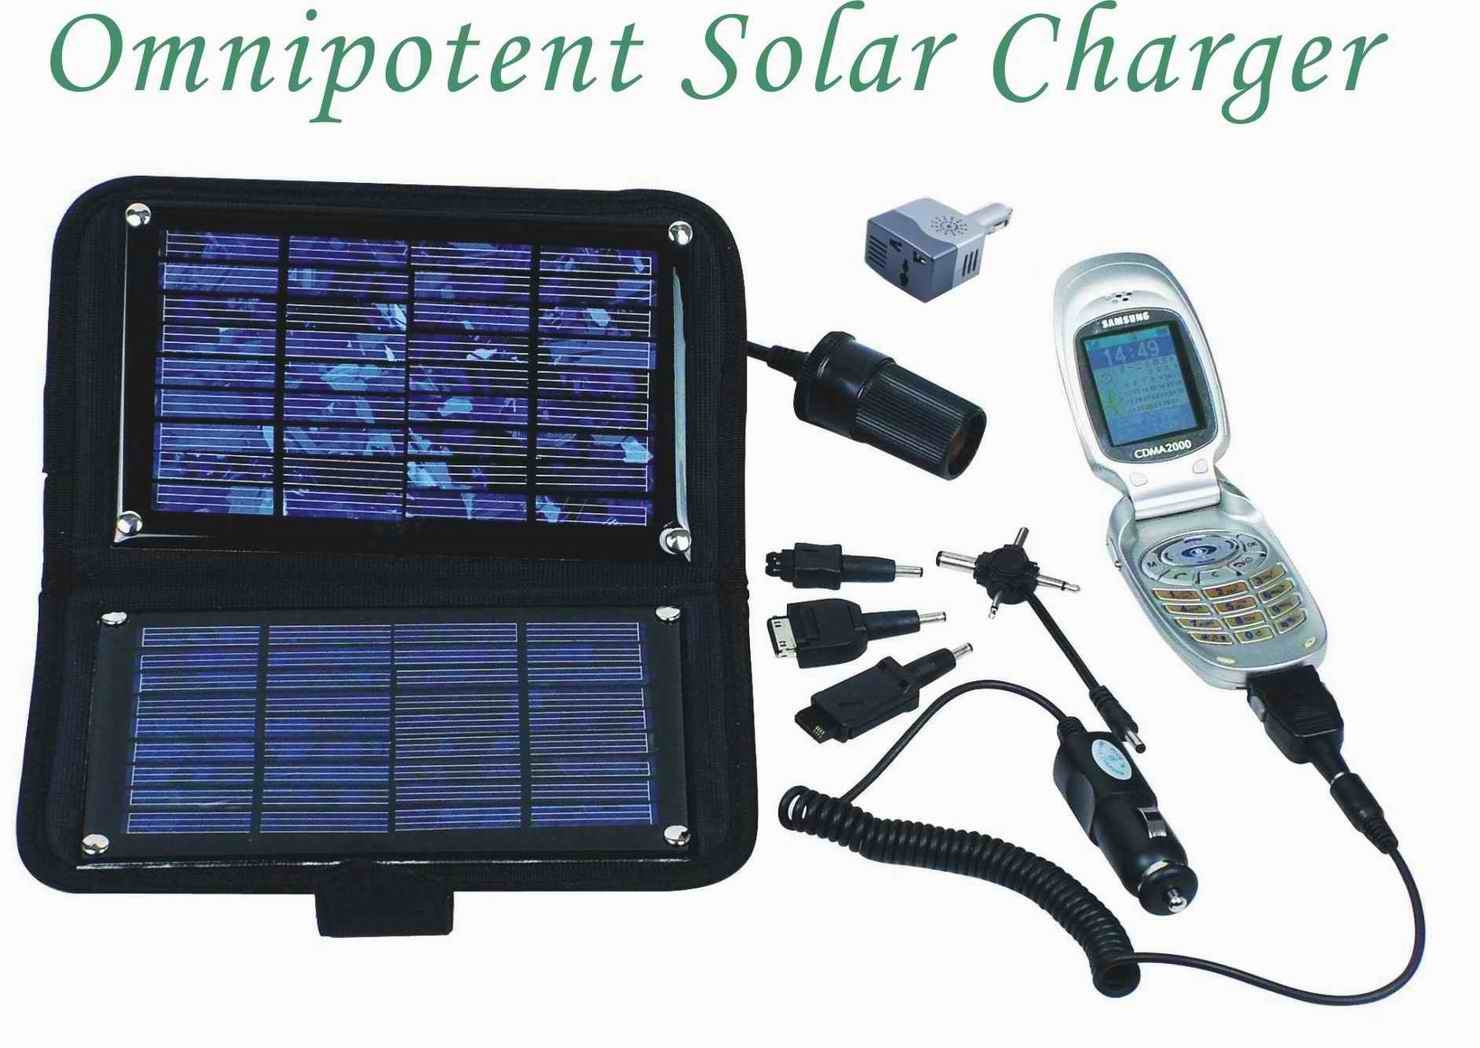 Omnipotent solar charger(SDMC-01)